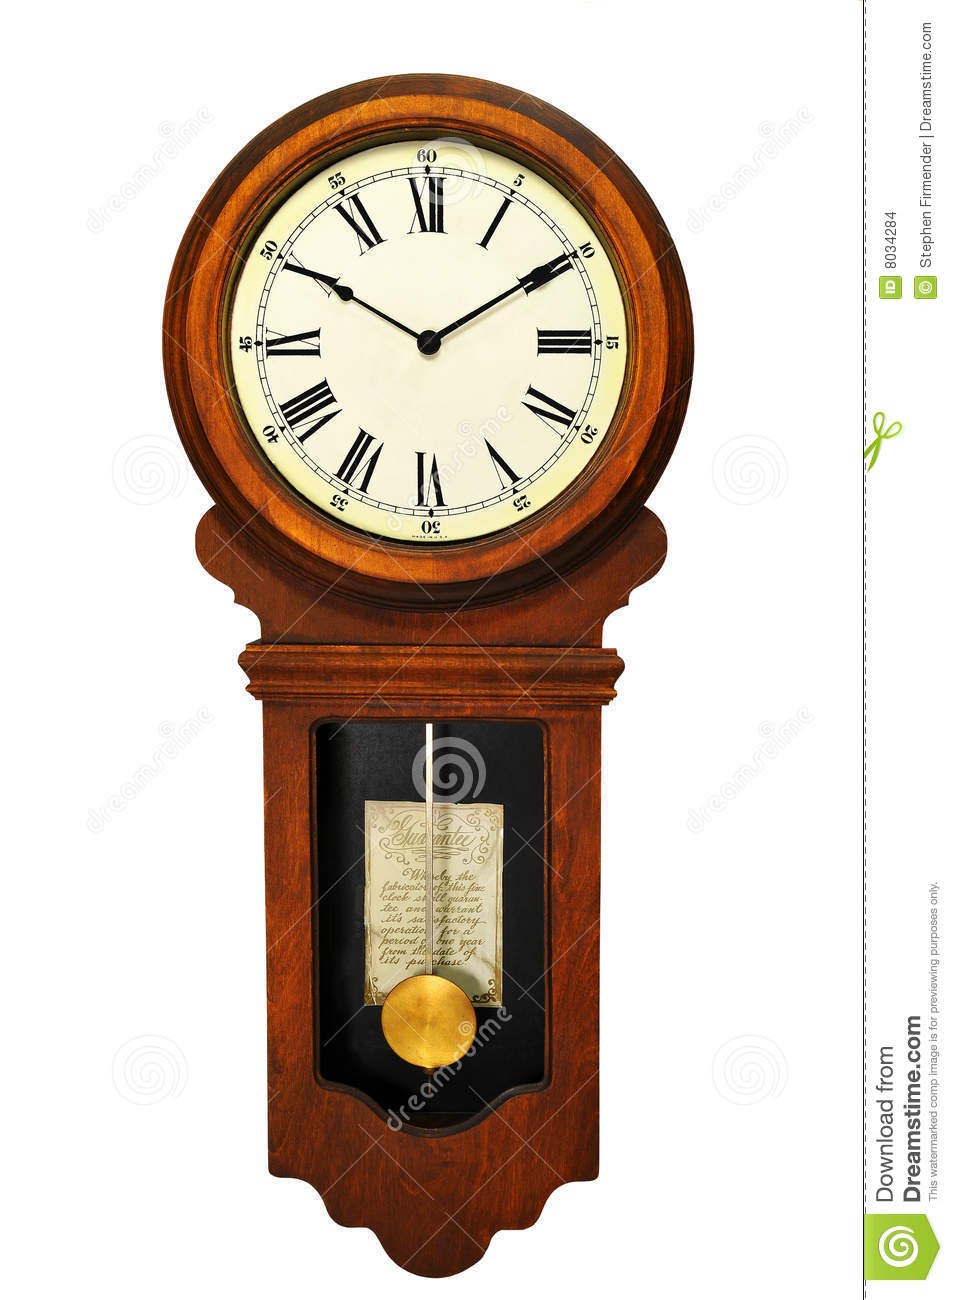 Antique Wall Clock Stock Images.